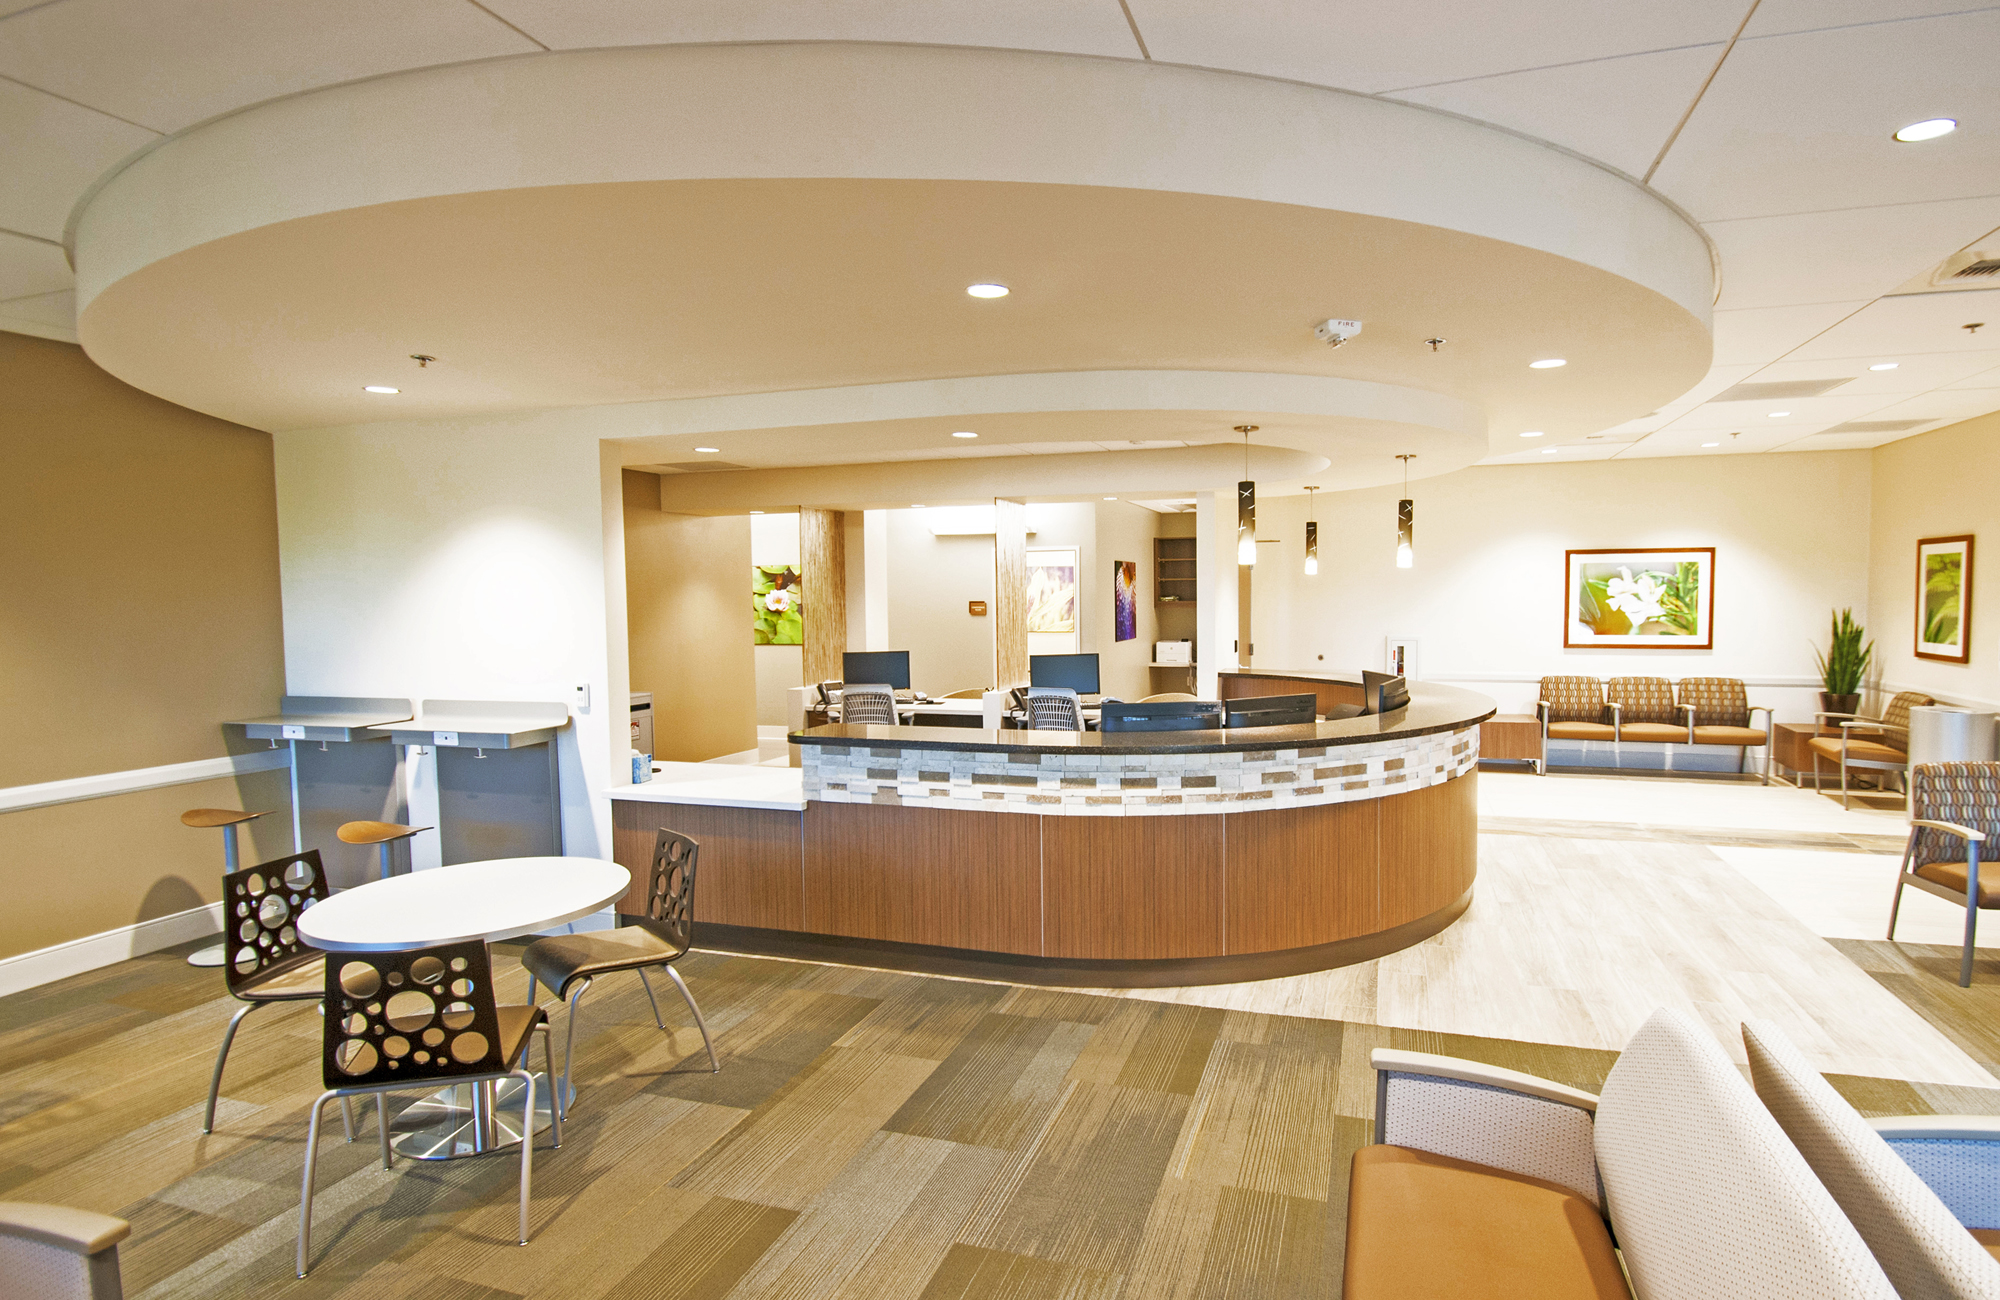 OCMI Project, Culinary Health Center, Honored at CMAA National Conference with Project Achievement Award